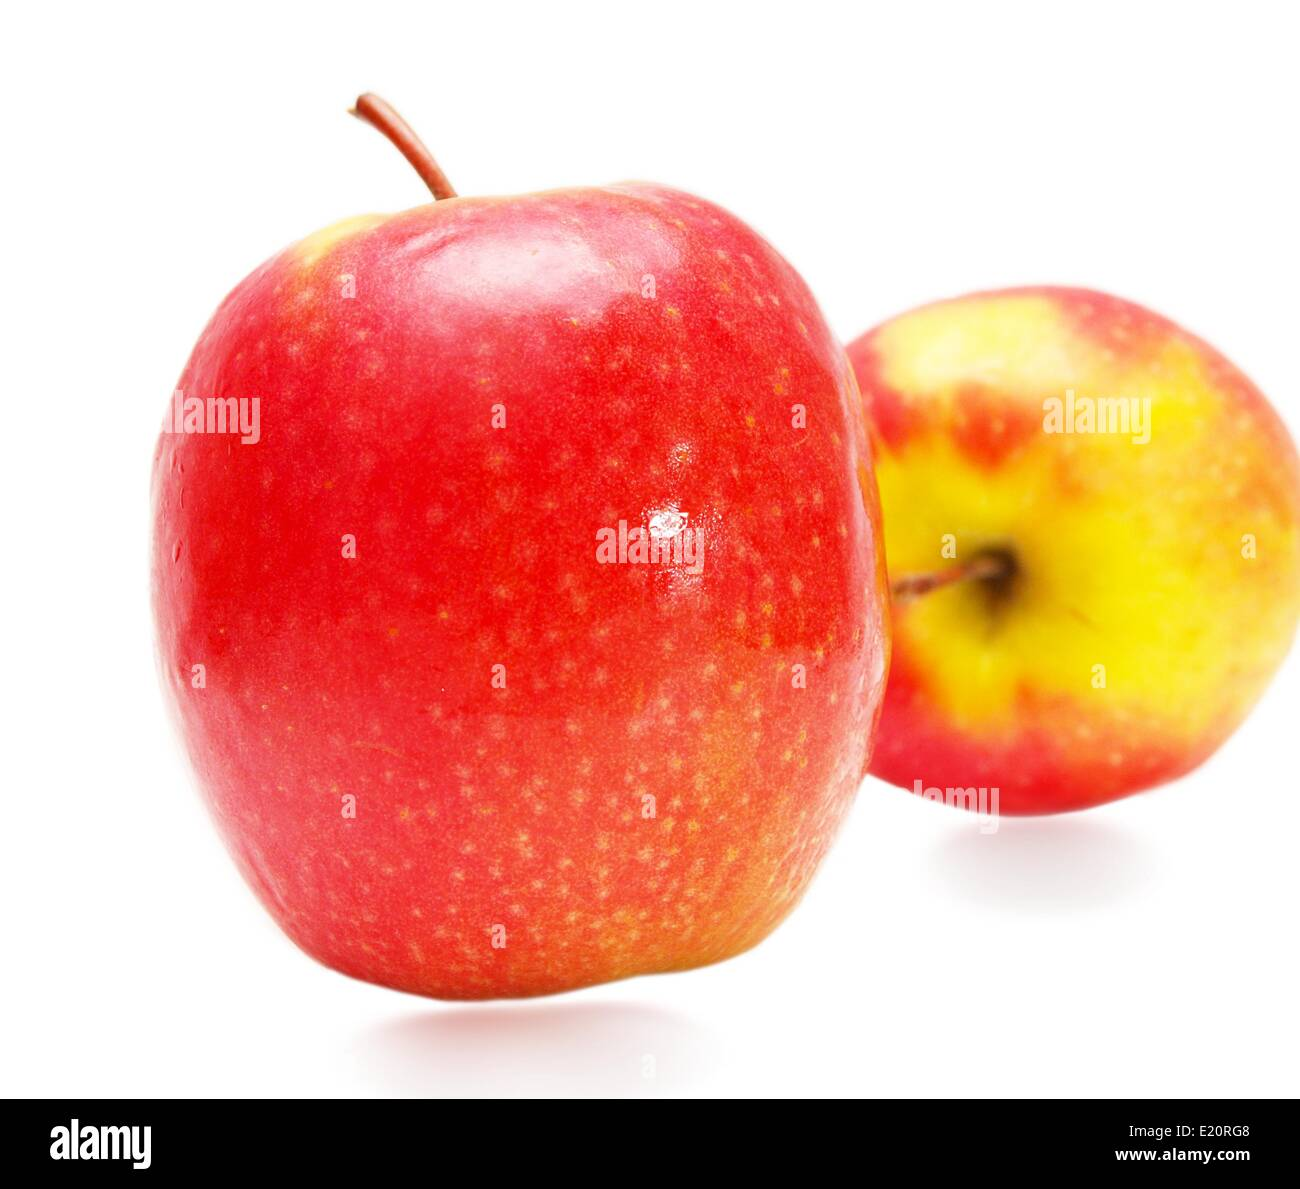 Red yellowish apples - Stock Image